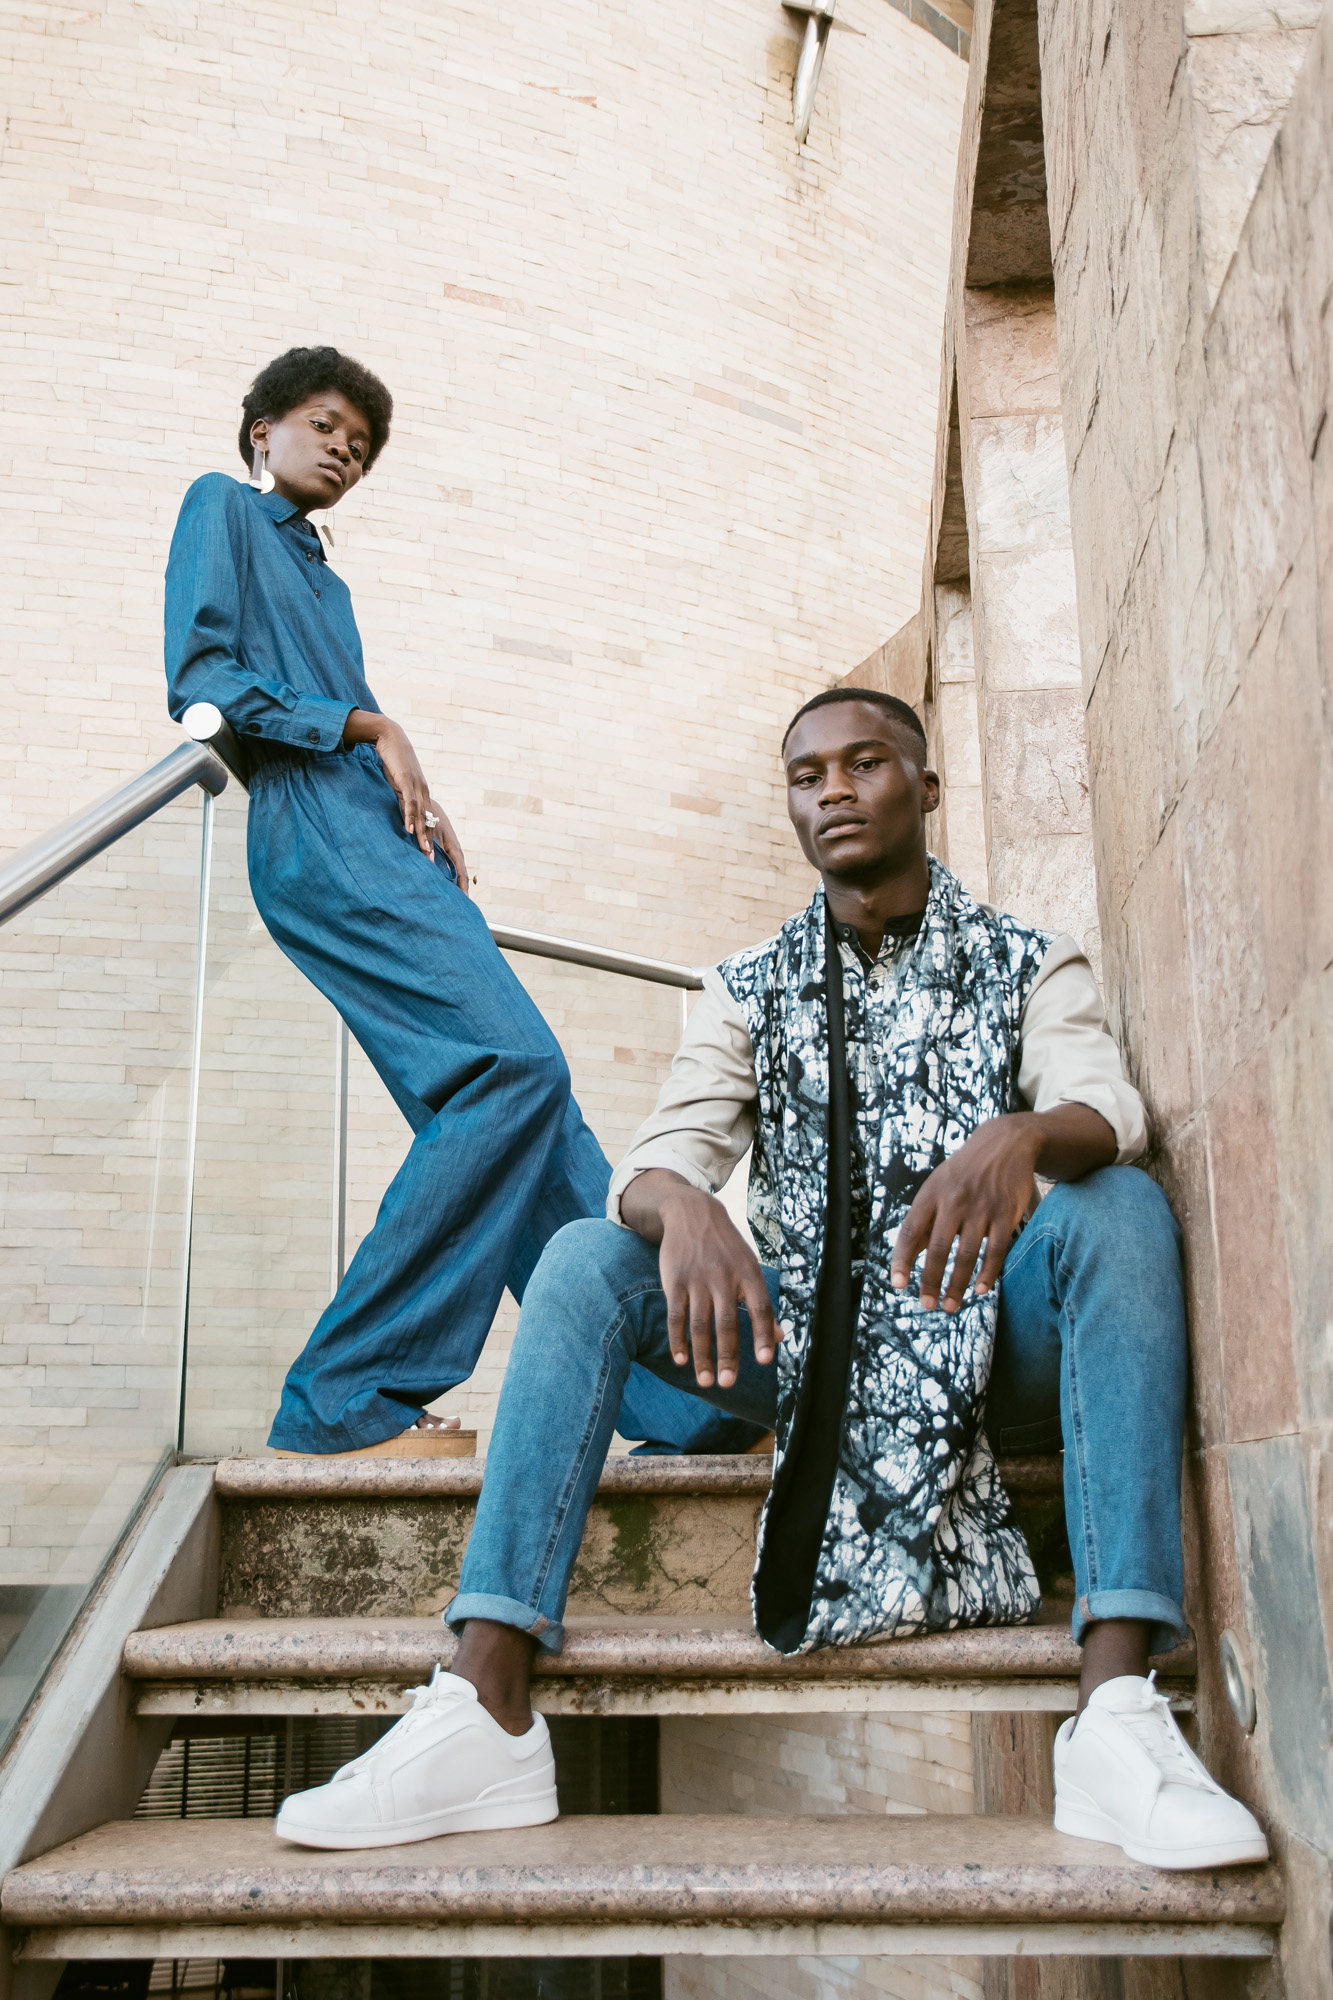 Anita wears Haute Baso jumpsuit, Ami Doshi Shah earrings and rings, I.Am.Isigo sandals. Randy wears House of Tayo shirt and snood, own jeans and trainers